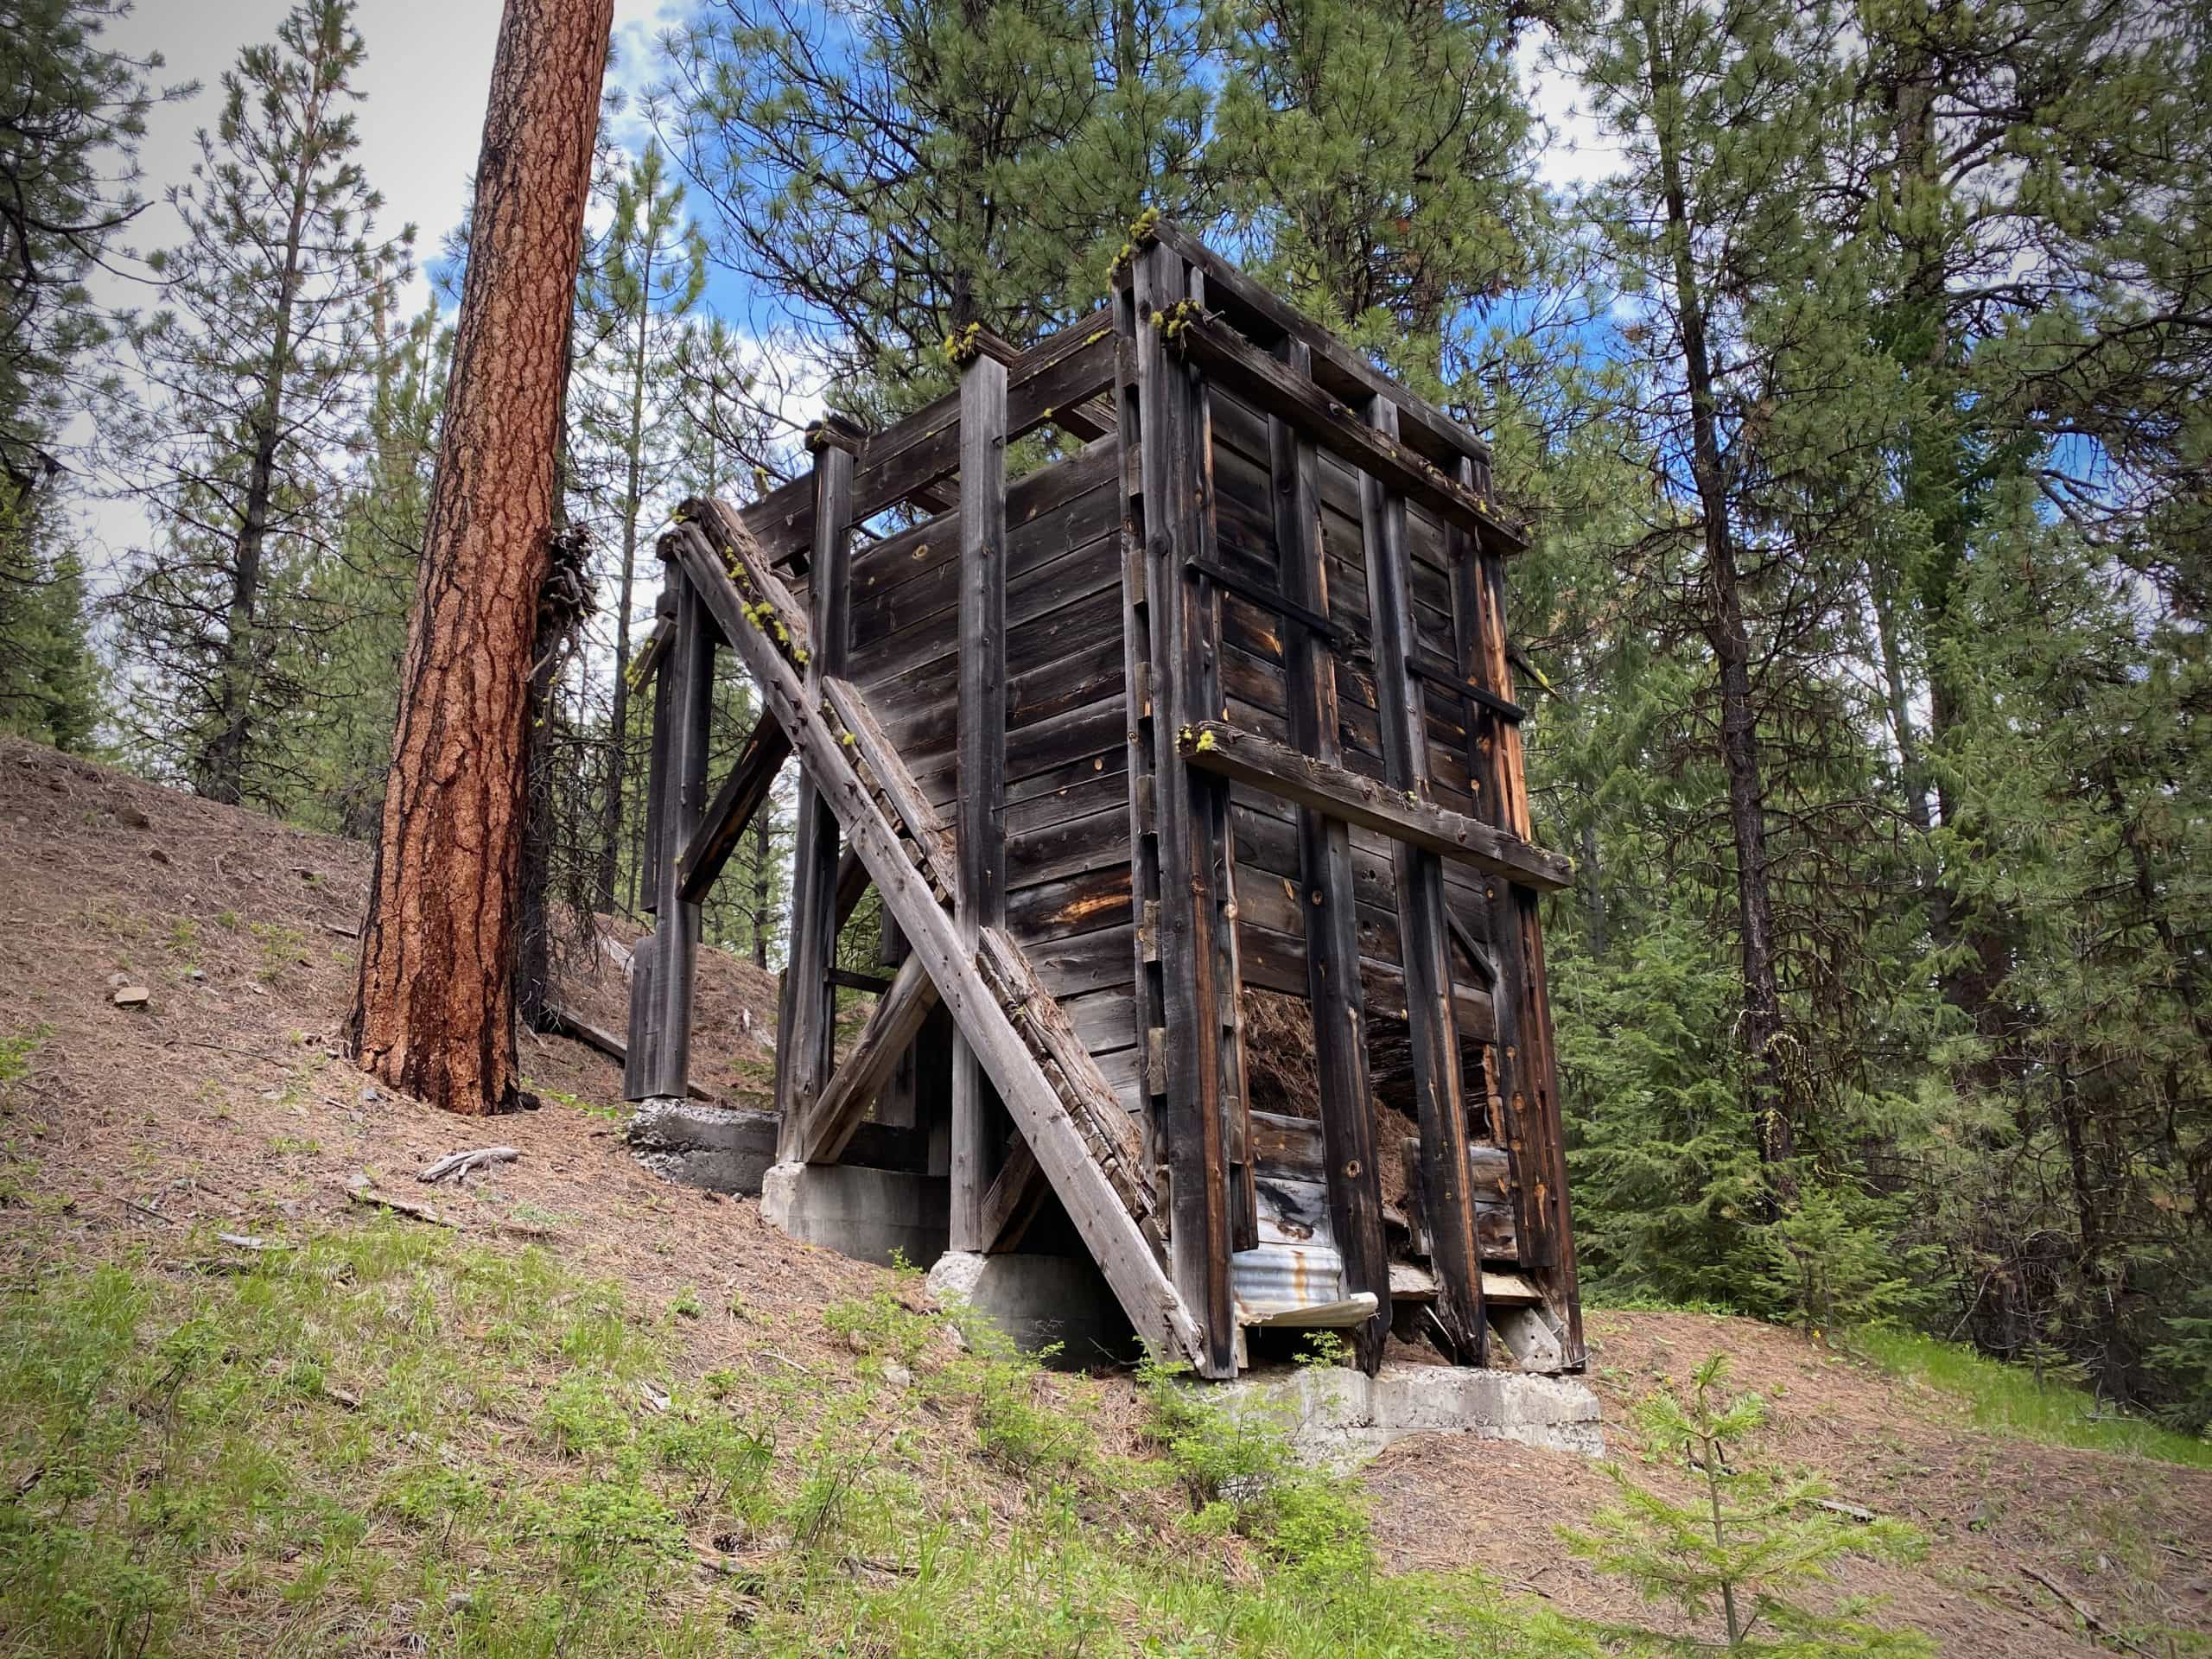 An old structure from the Amity mine in the Ochoco National forest.